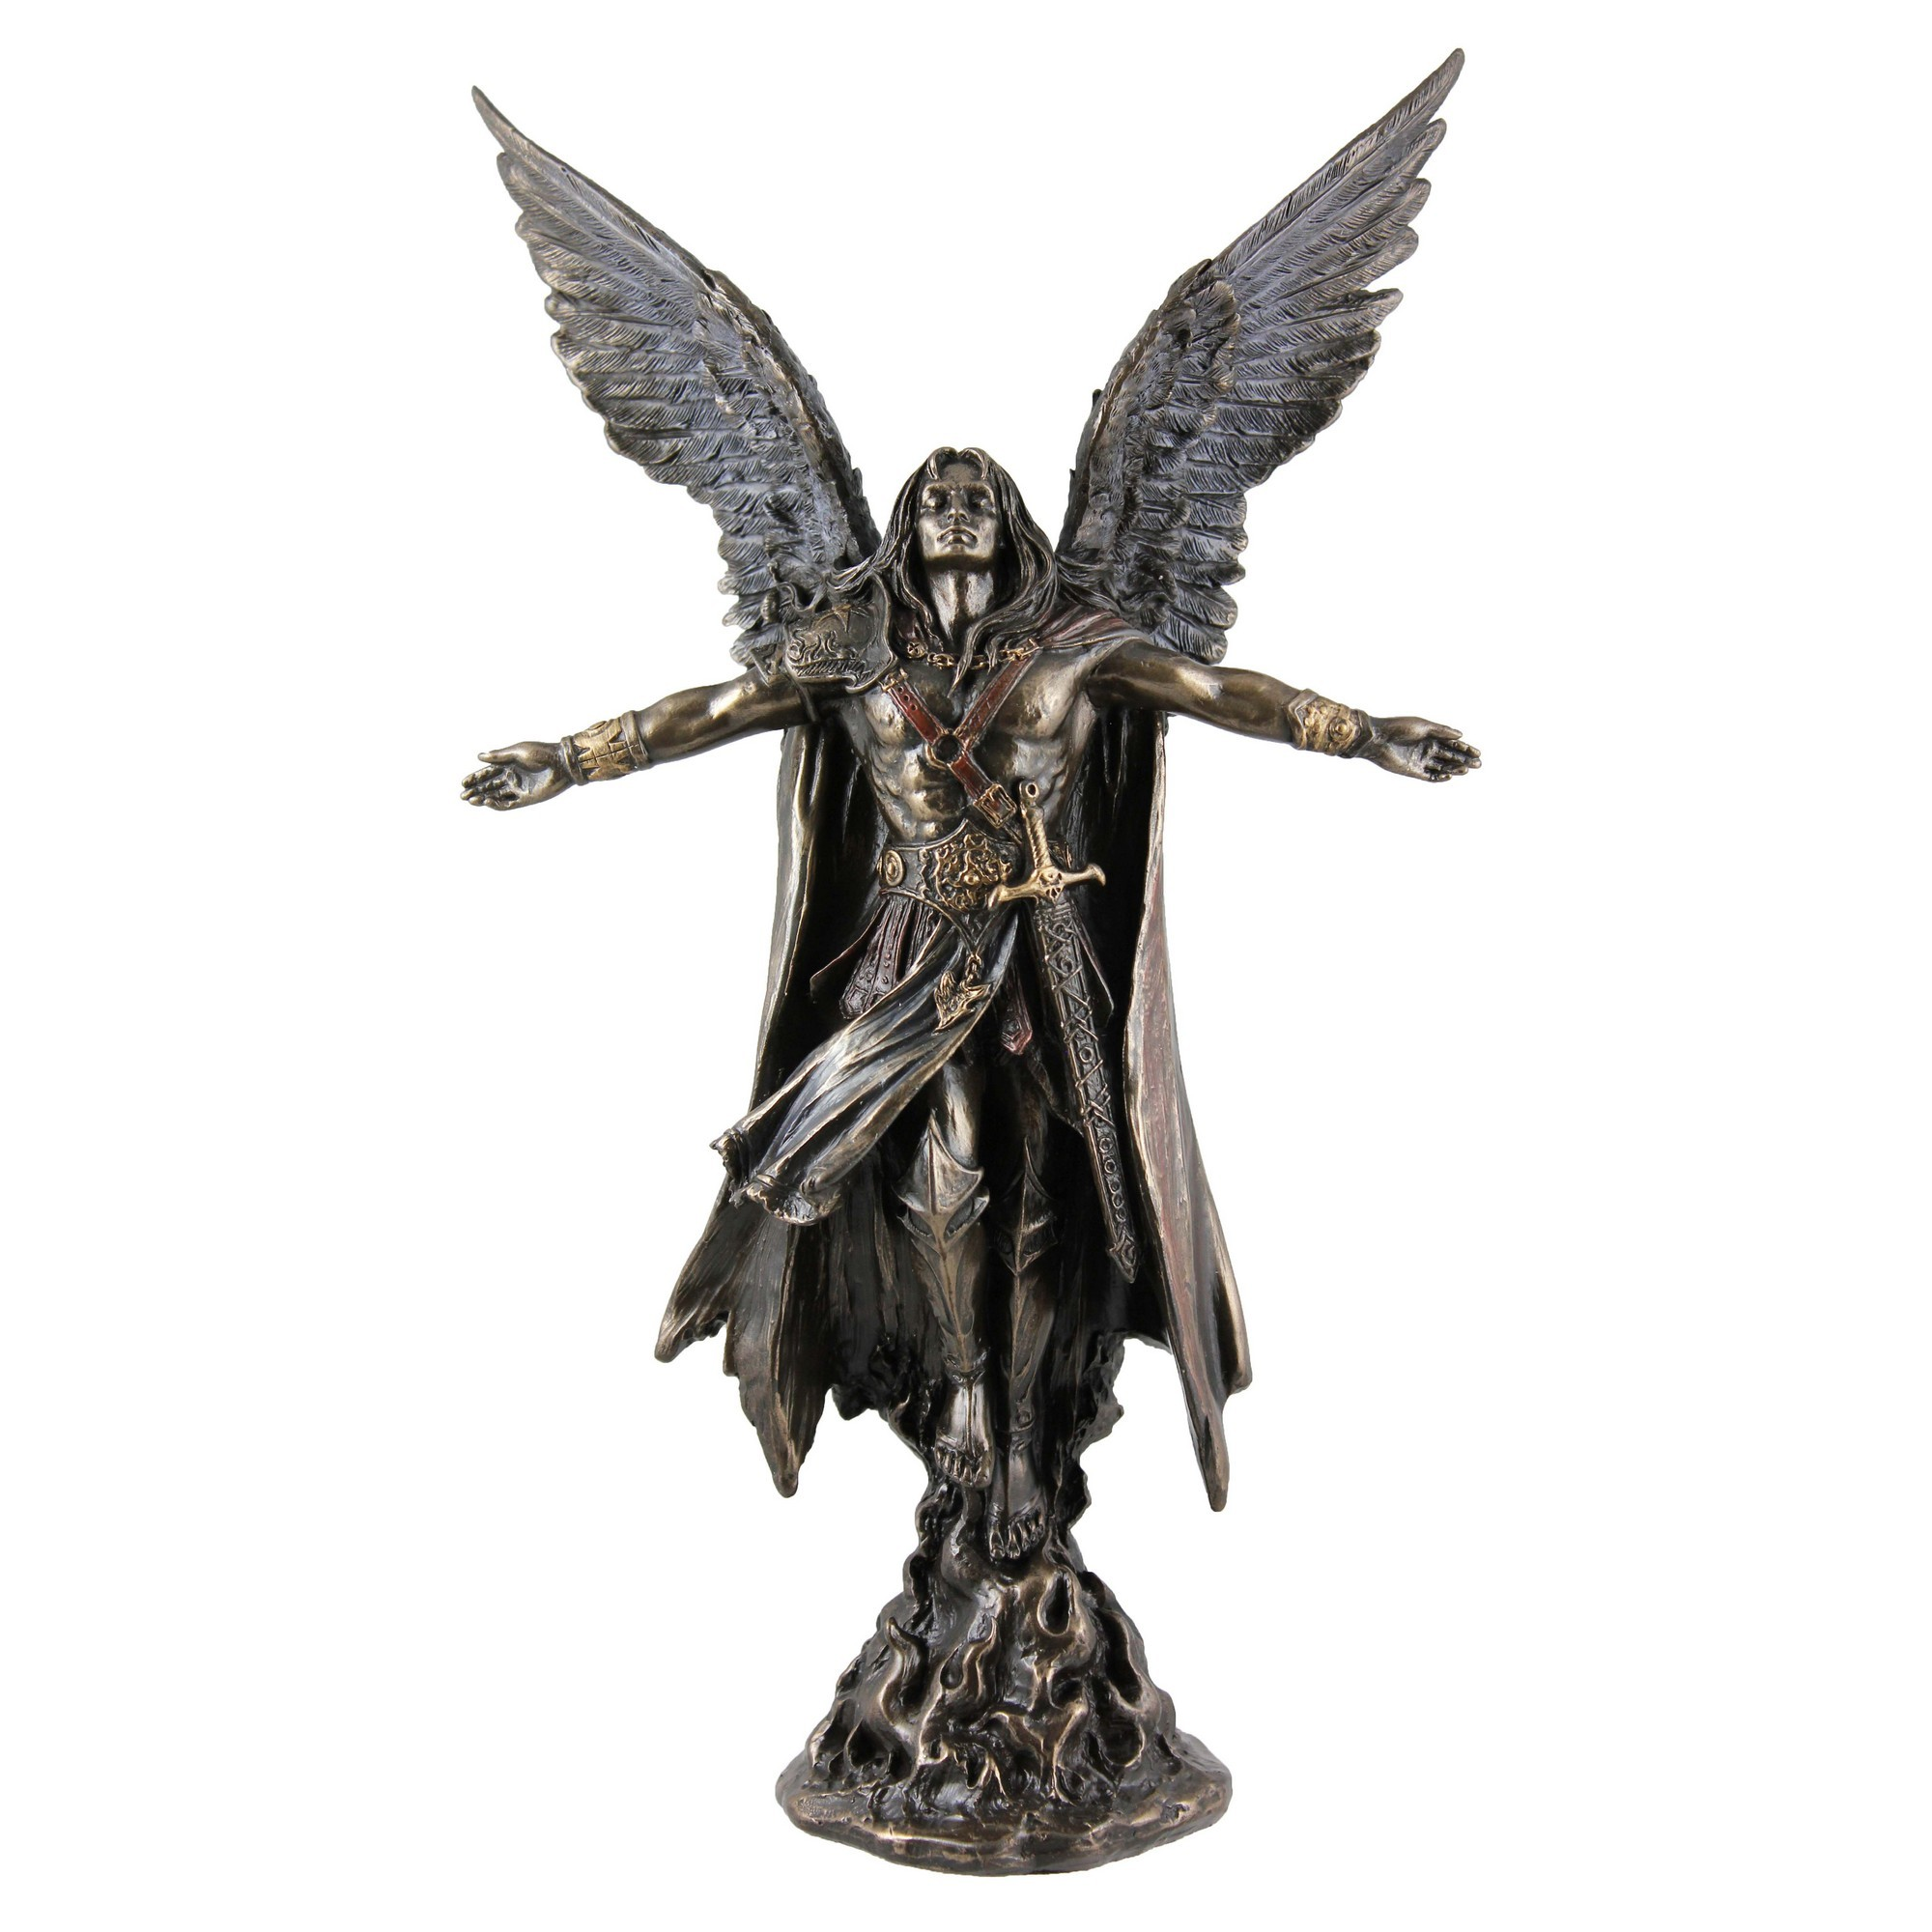 Veronese Cold Cast Bronze Coated Angel Figurine, Uriel The Archangel of Wisdom, Small